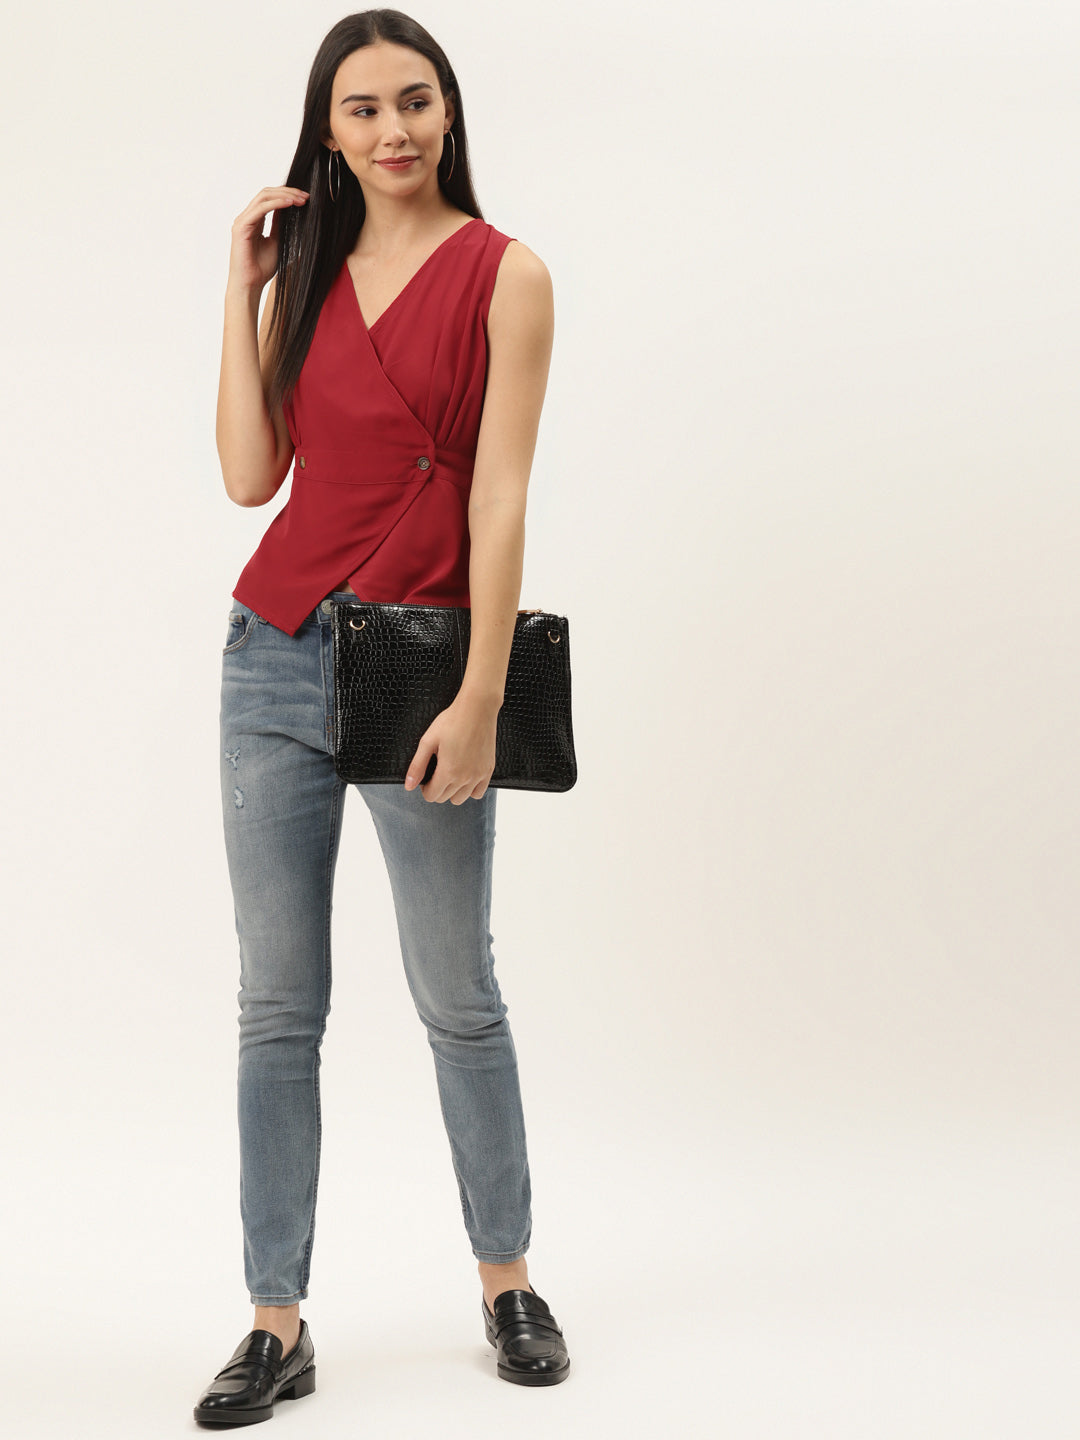 Red cinched waist top